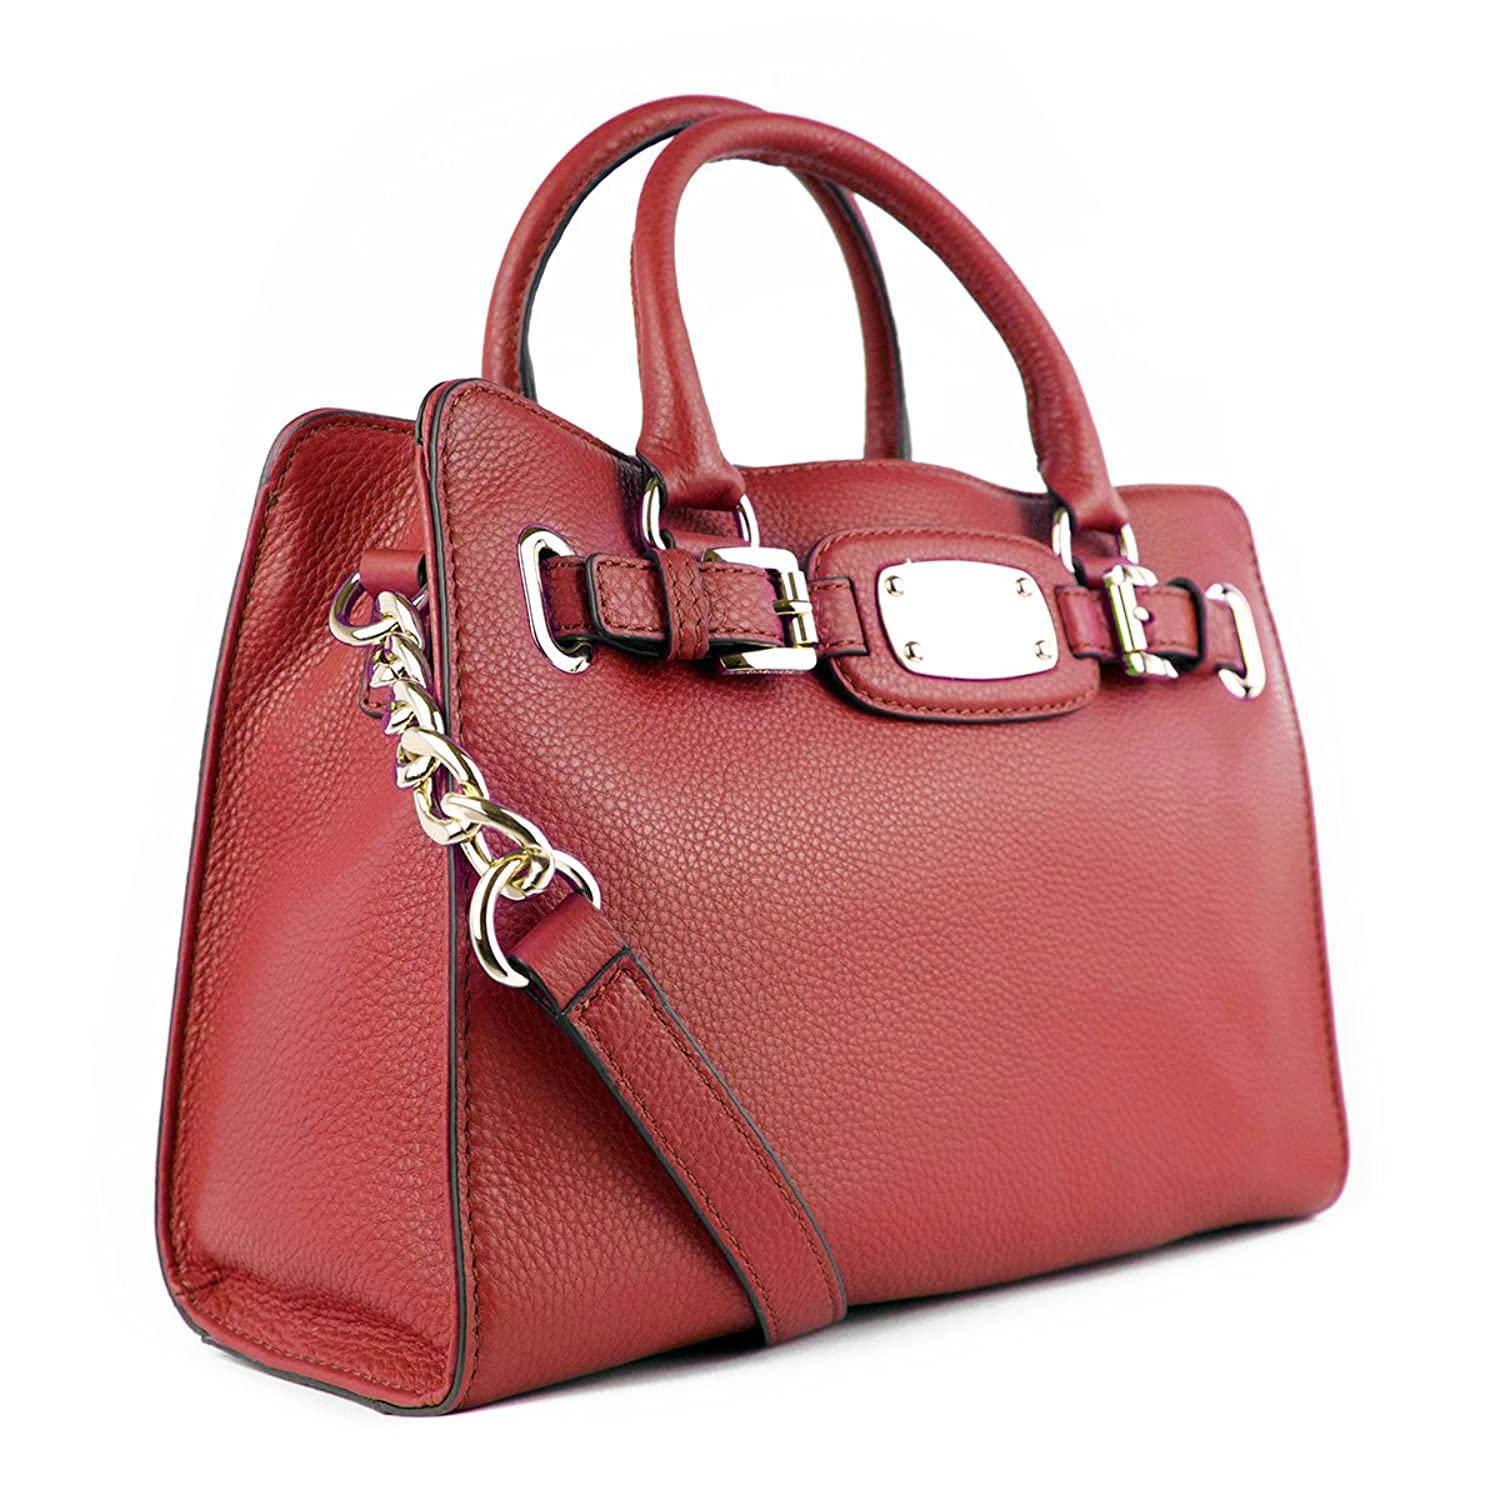 Amazon.com: Michael Kors Genuine Hamilton Red Leather Med Tote Bag: Shoes